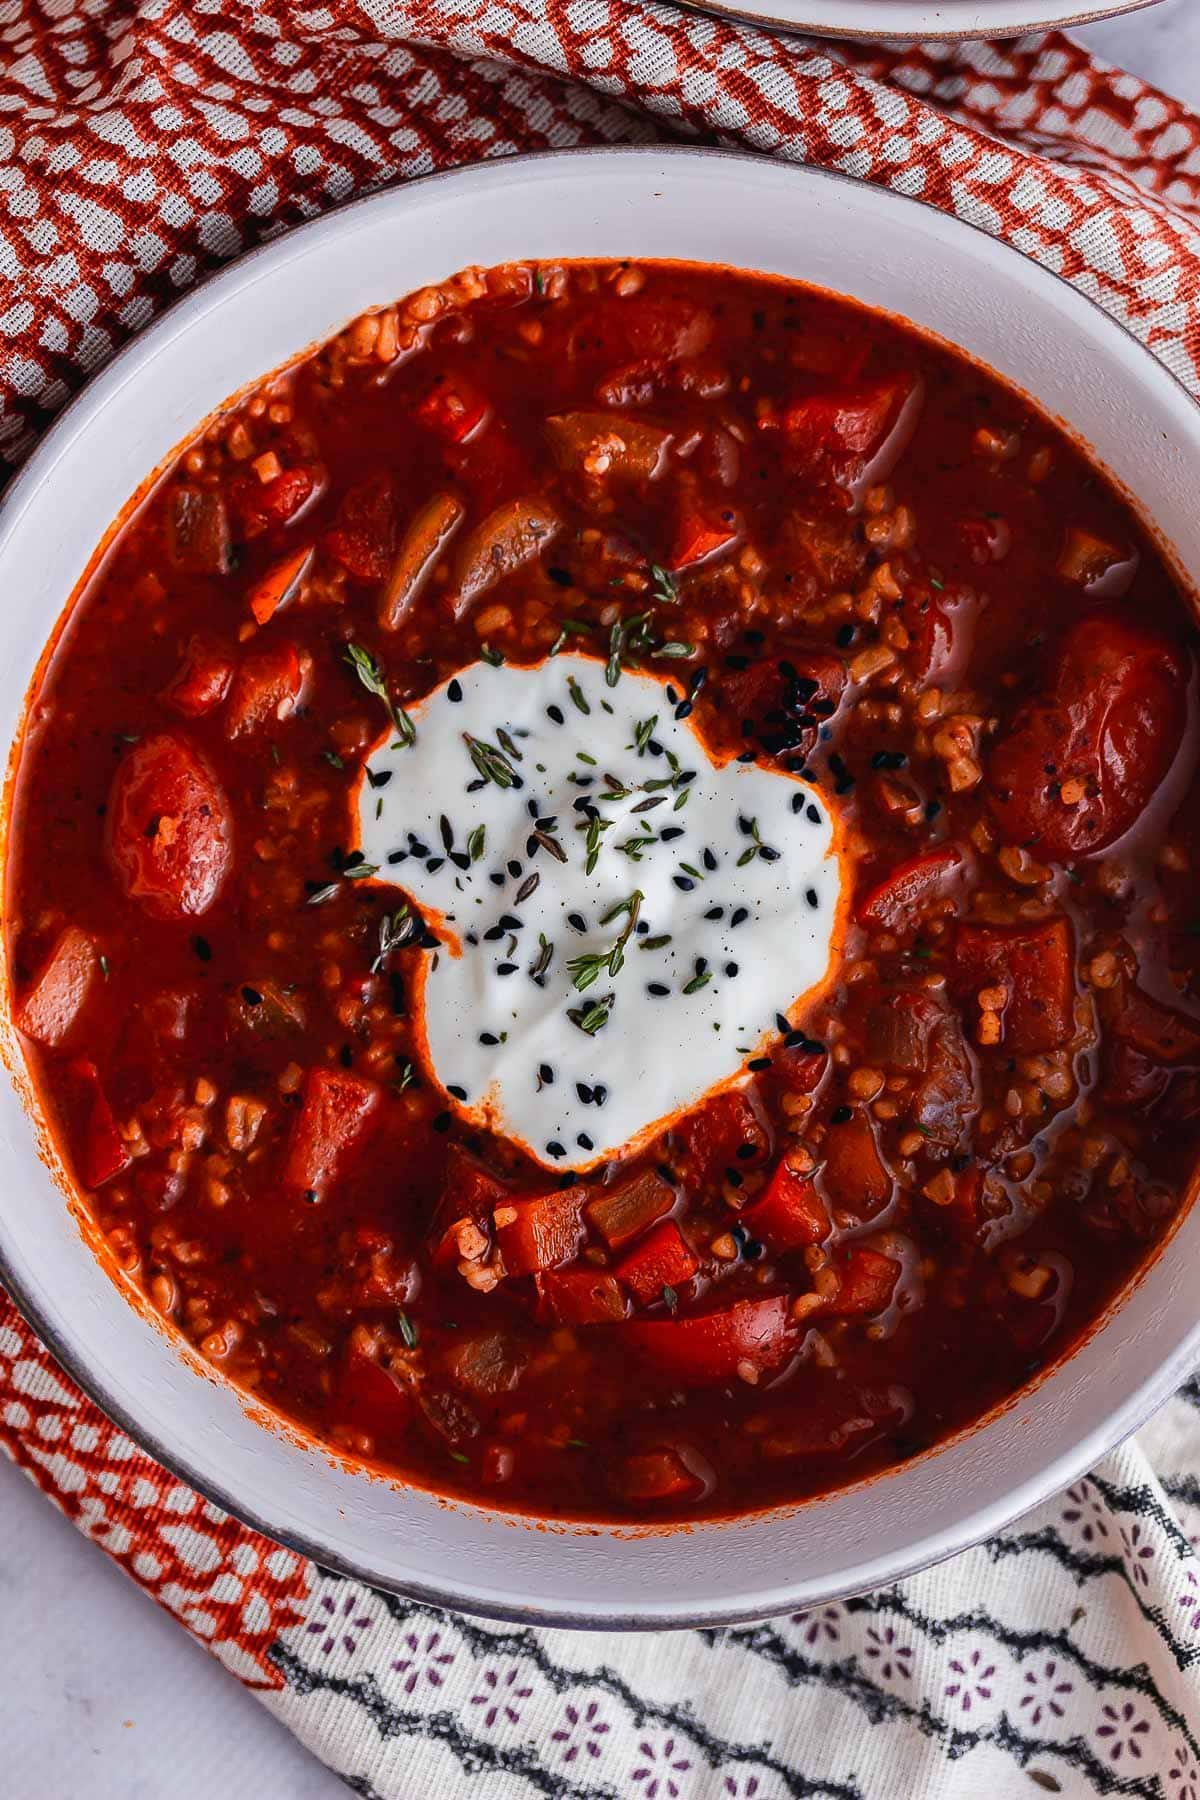 Overhead shot of spiced soup with tomato topped with yoghurt